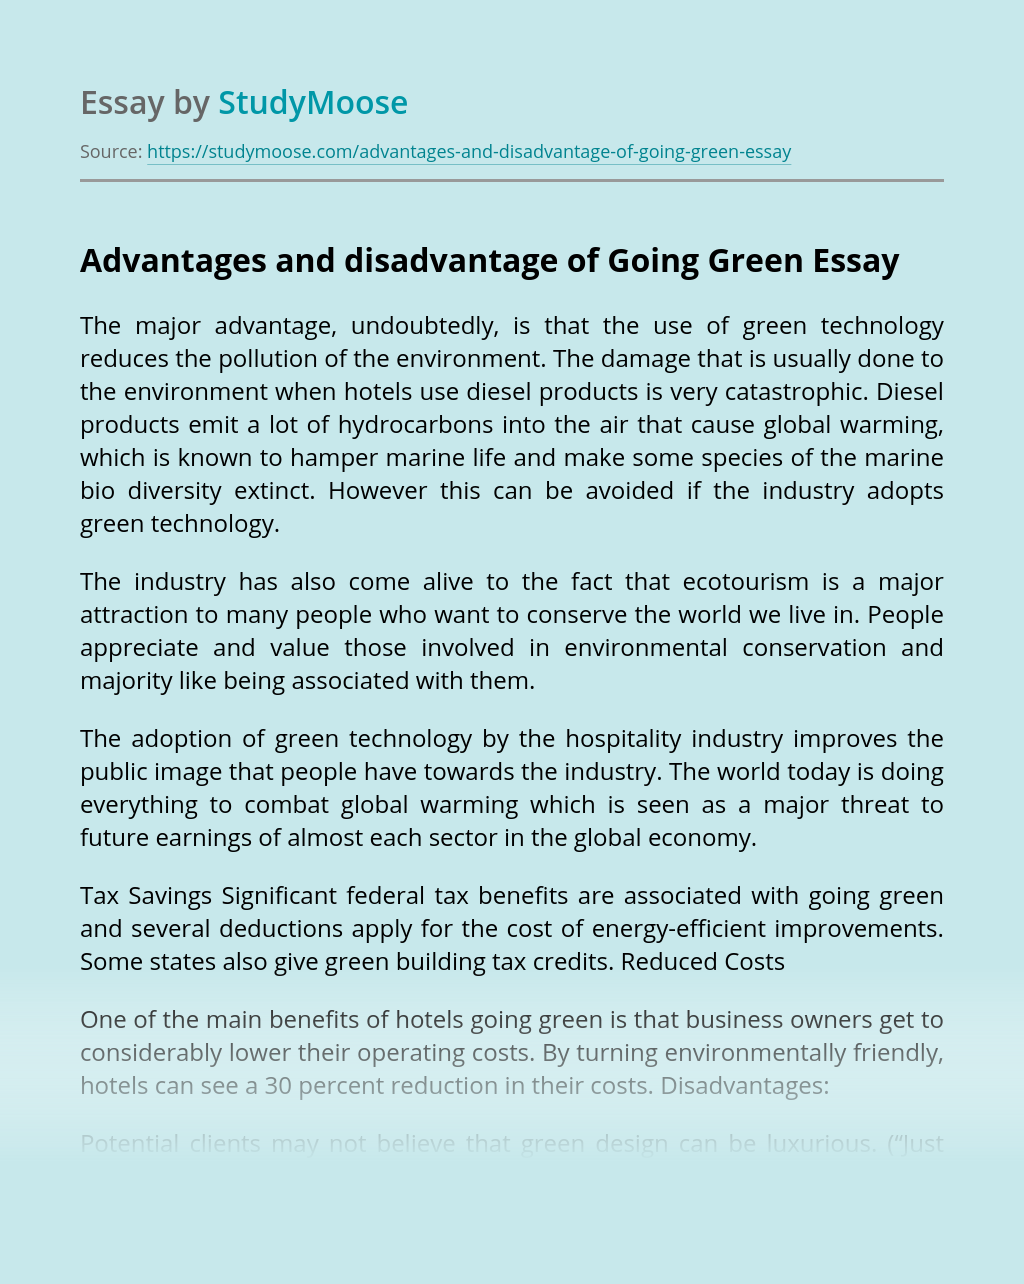 Advantages and Disadvantage of Going Green